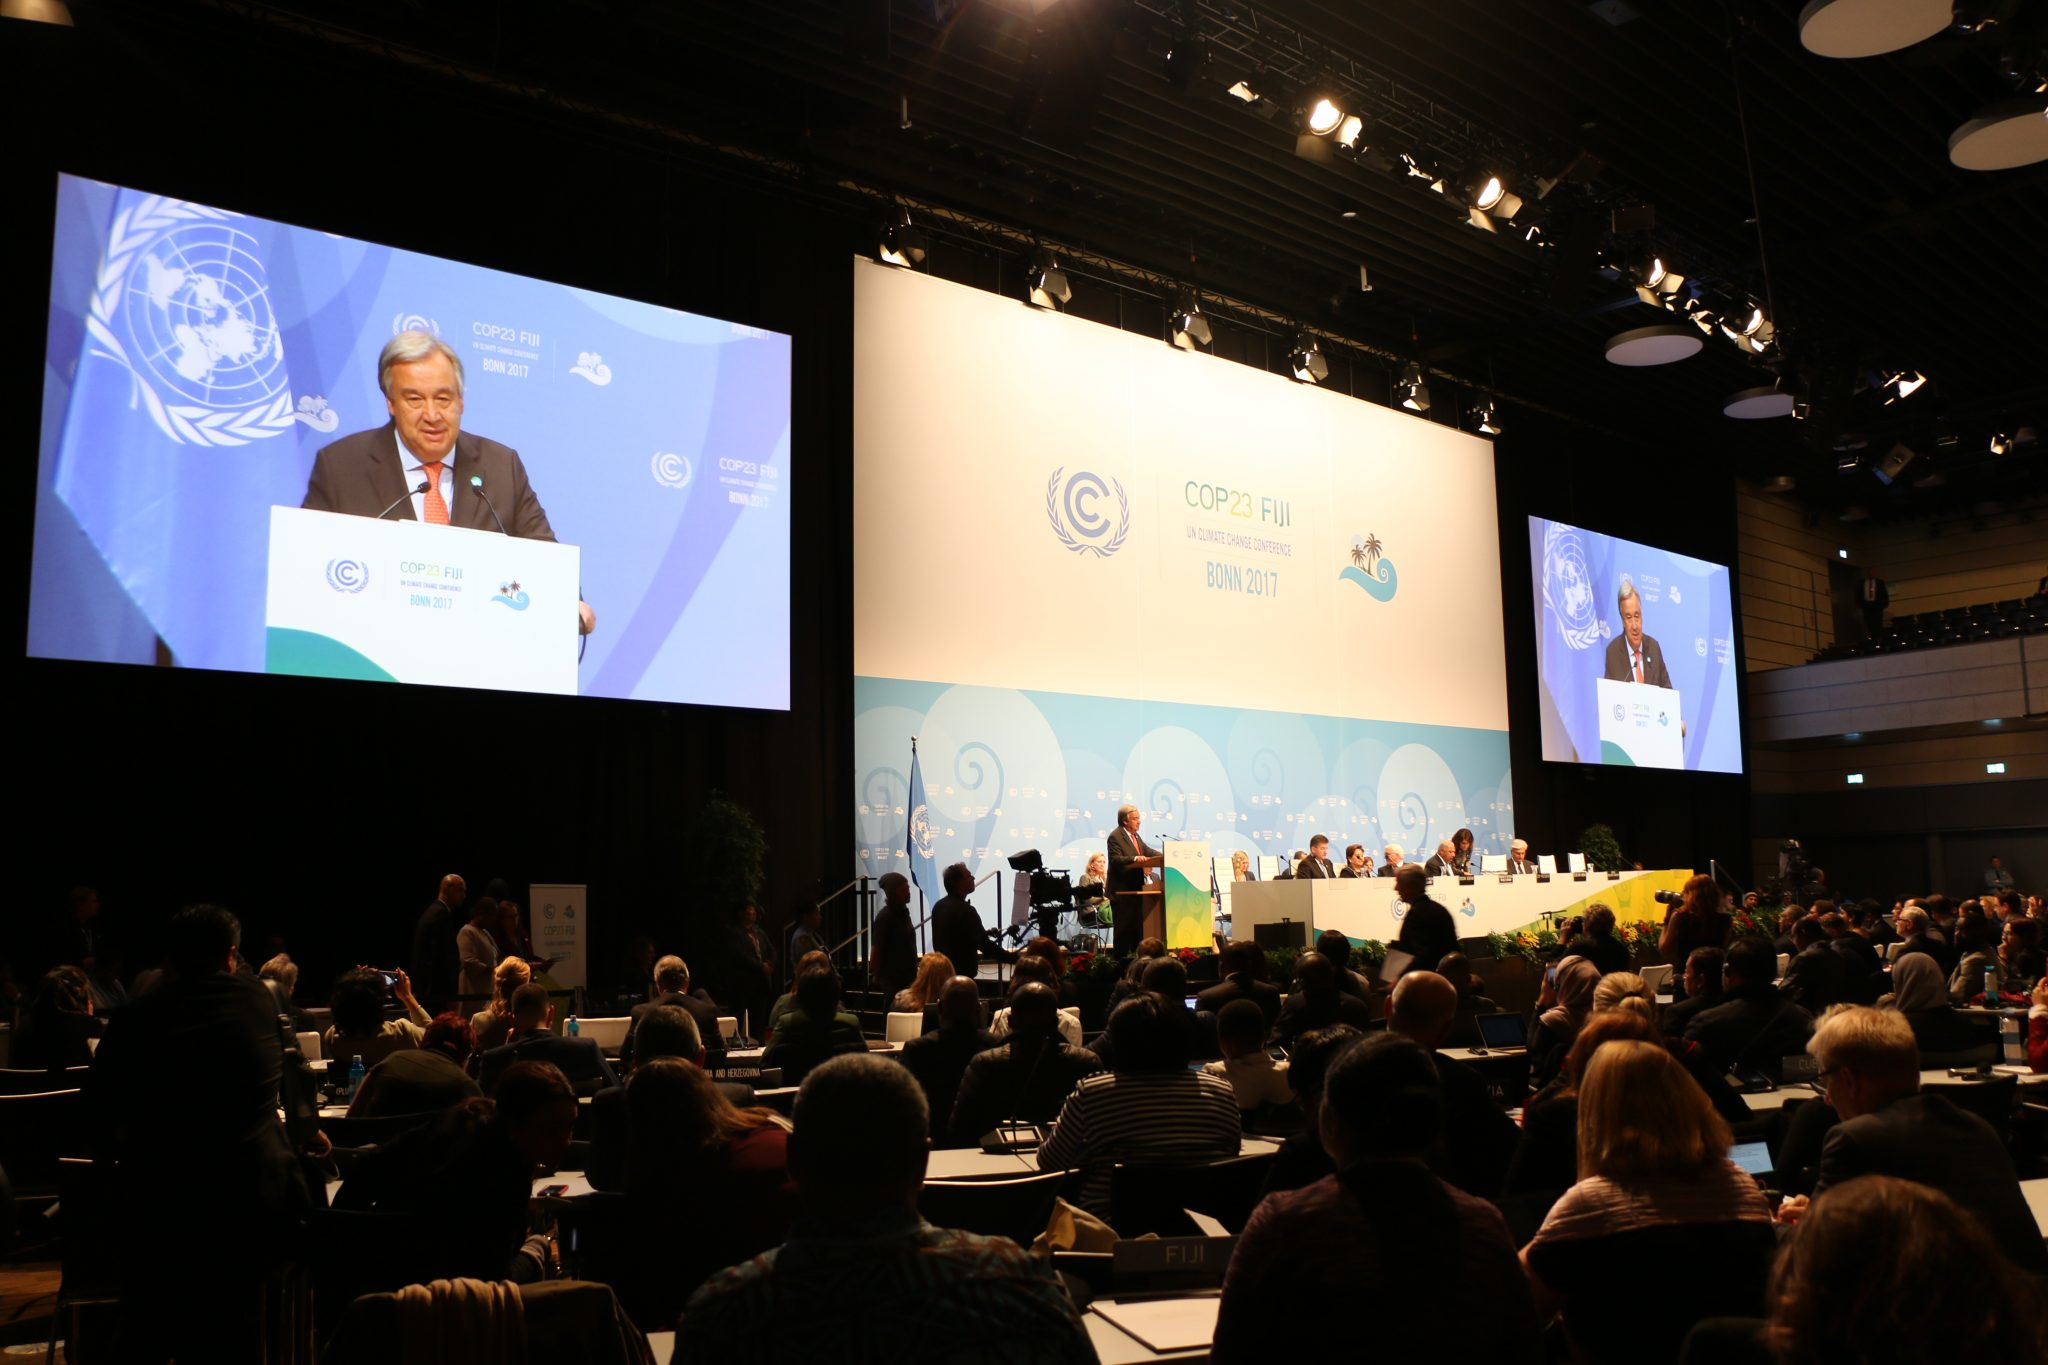 COP23: UN chief urges more ambition, leadership and partnerships on climate action - United Nations Sustainable Development